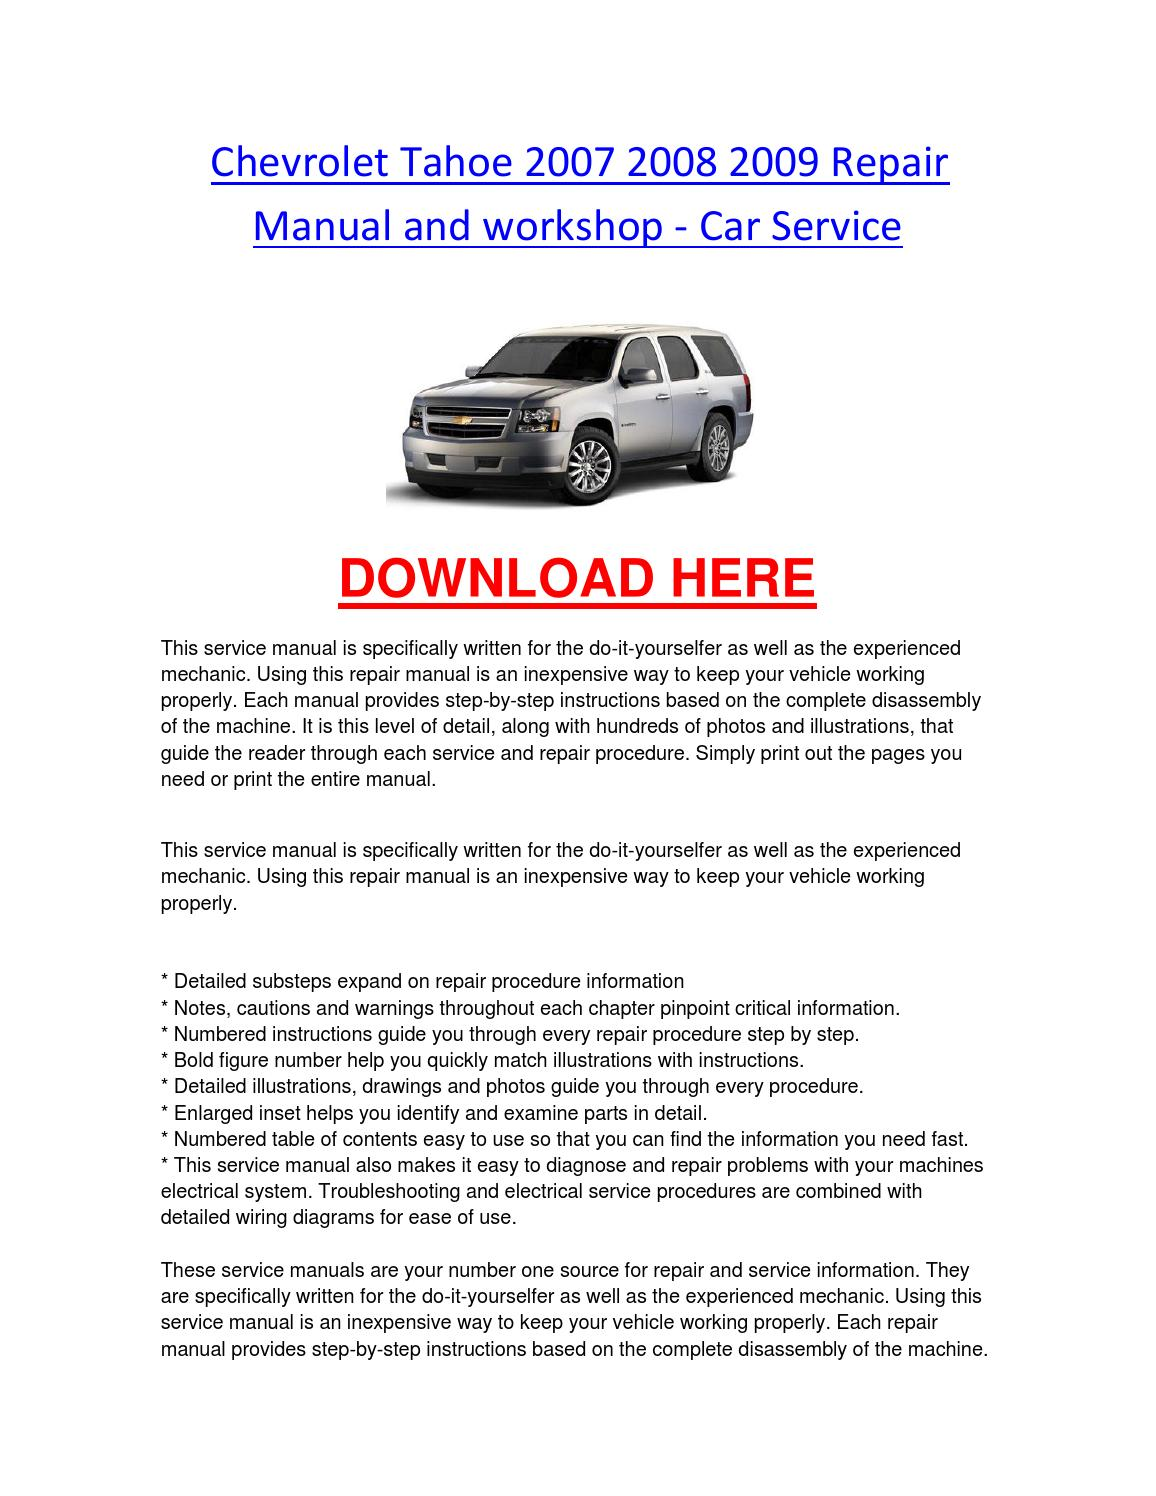 Chevrolet tahoe 2007 2008 2009 repair manual and workshop car service by  chevroletservice - issuu